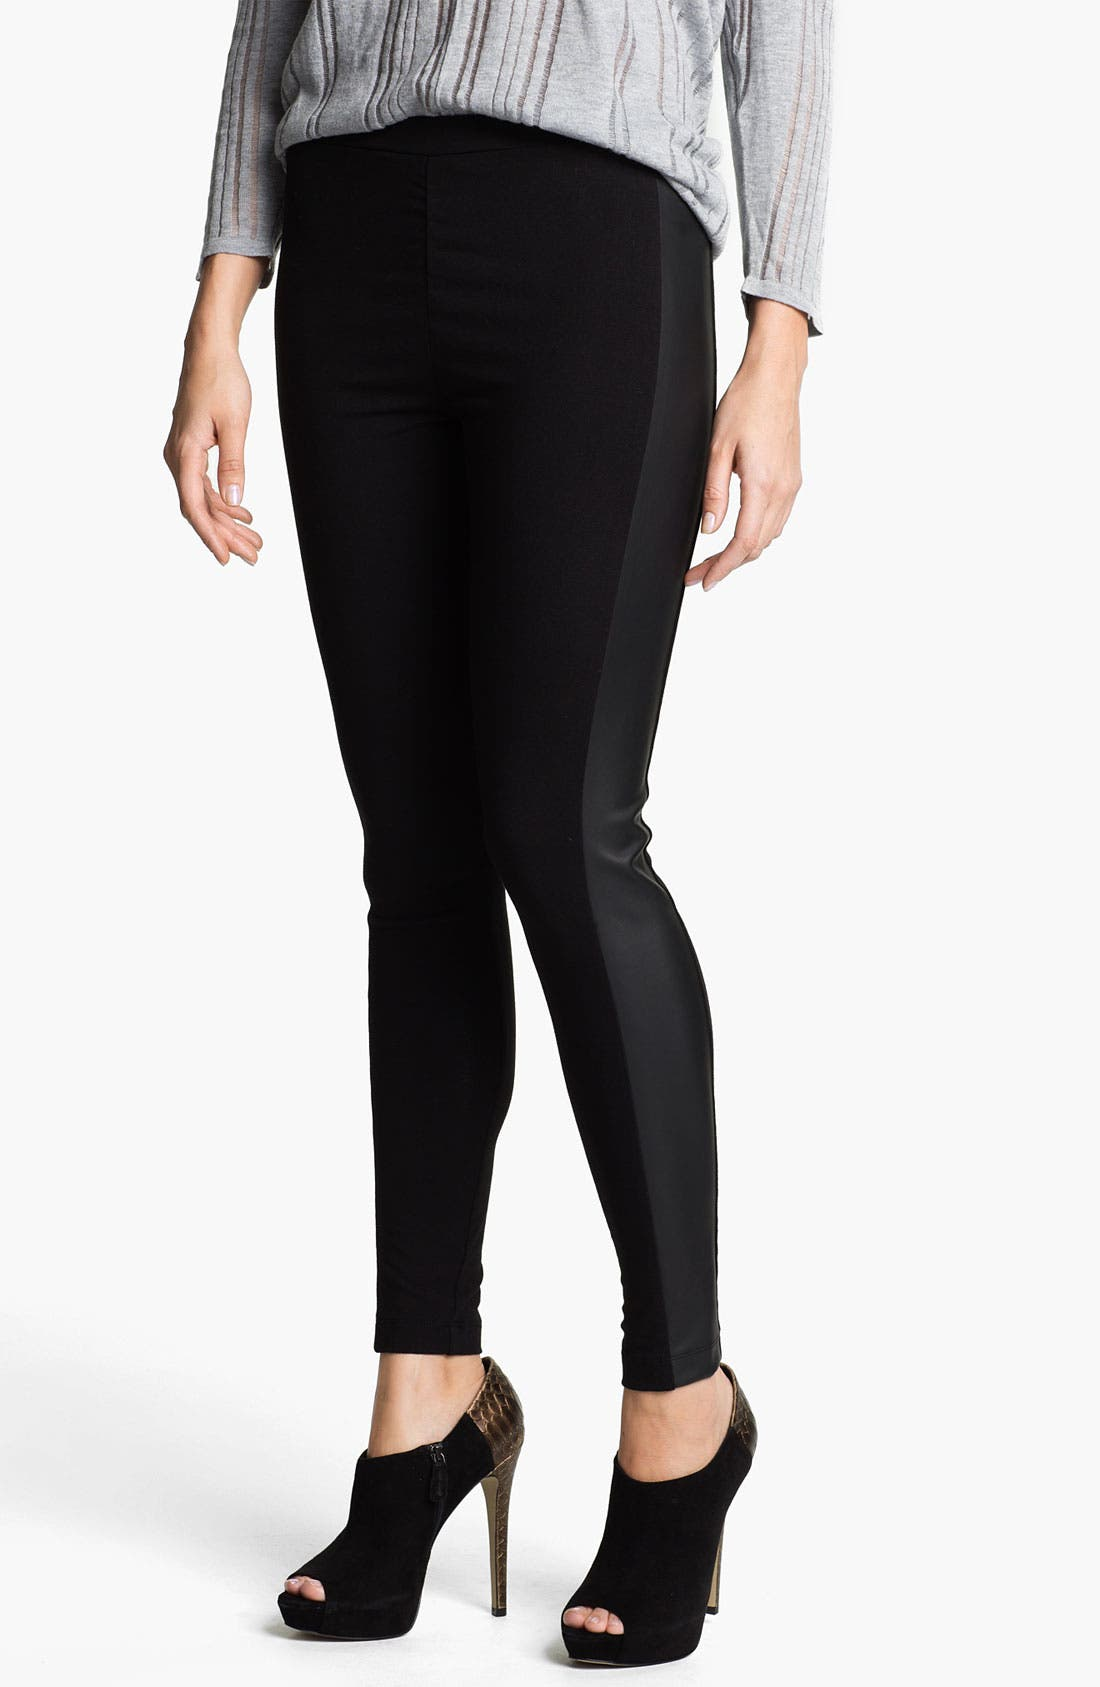 Main Image - Two by Vince Camuto Faux Leather & Knit Leggings (Petite)